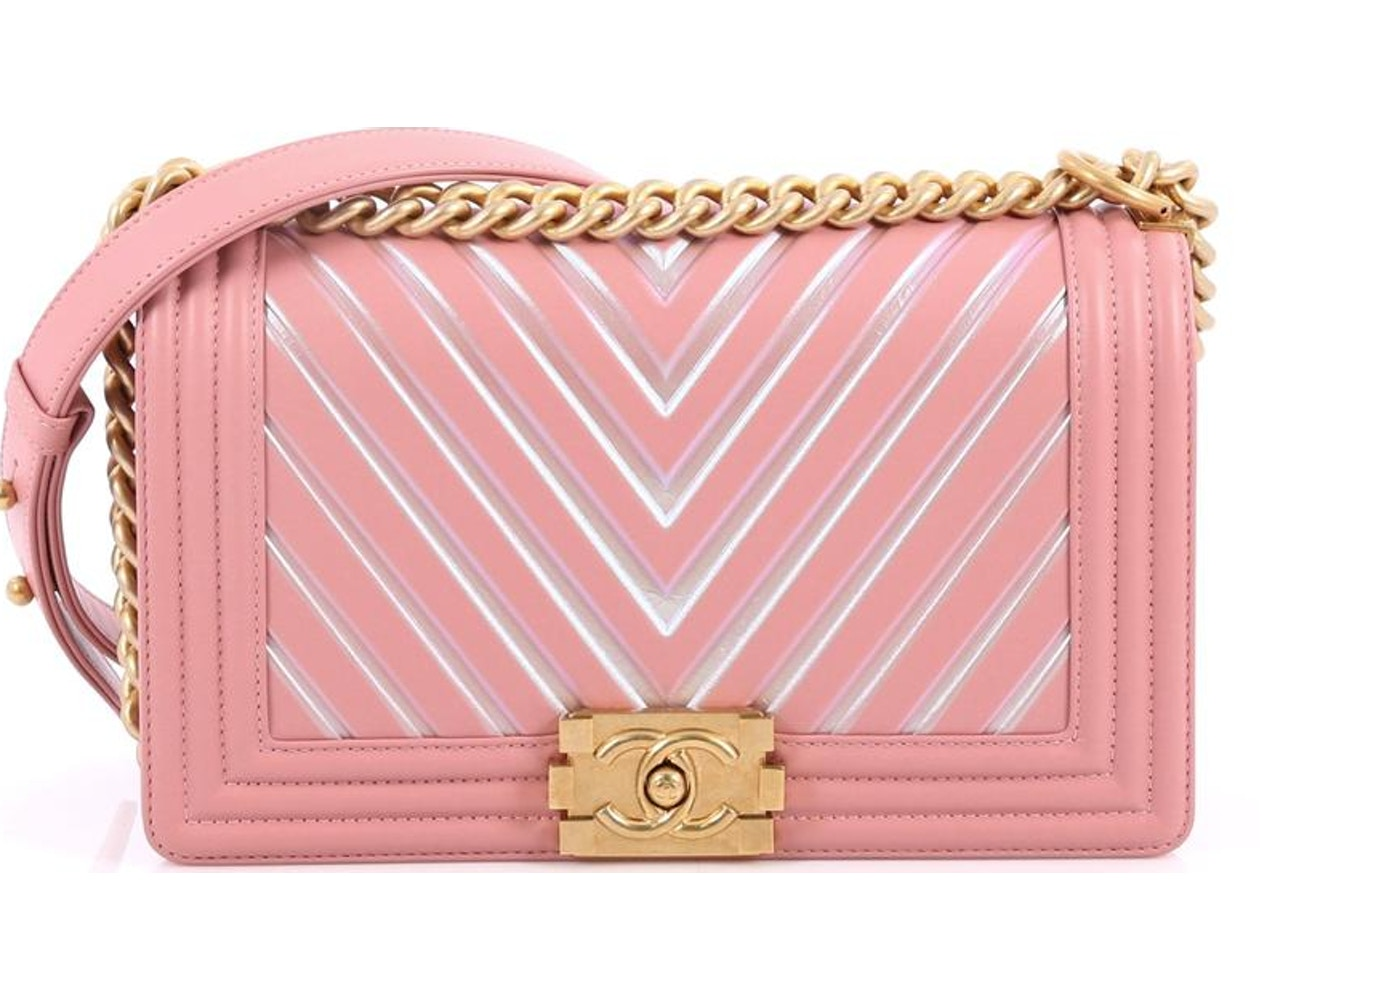 8b775211a02f Chanel Boy Flap Bag Quilted Chevron Painted Old Medium Pink. Quilted Chevron  Painted Old Medium Pink